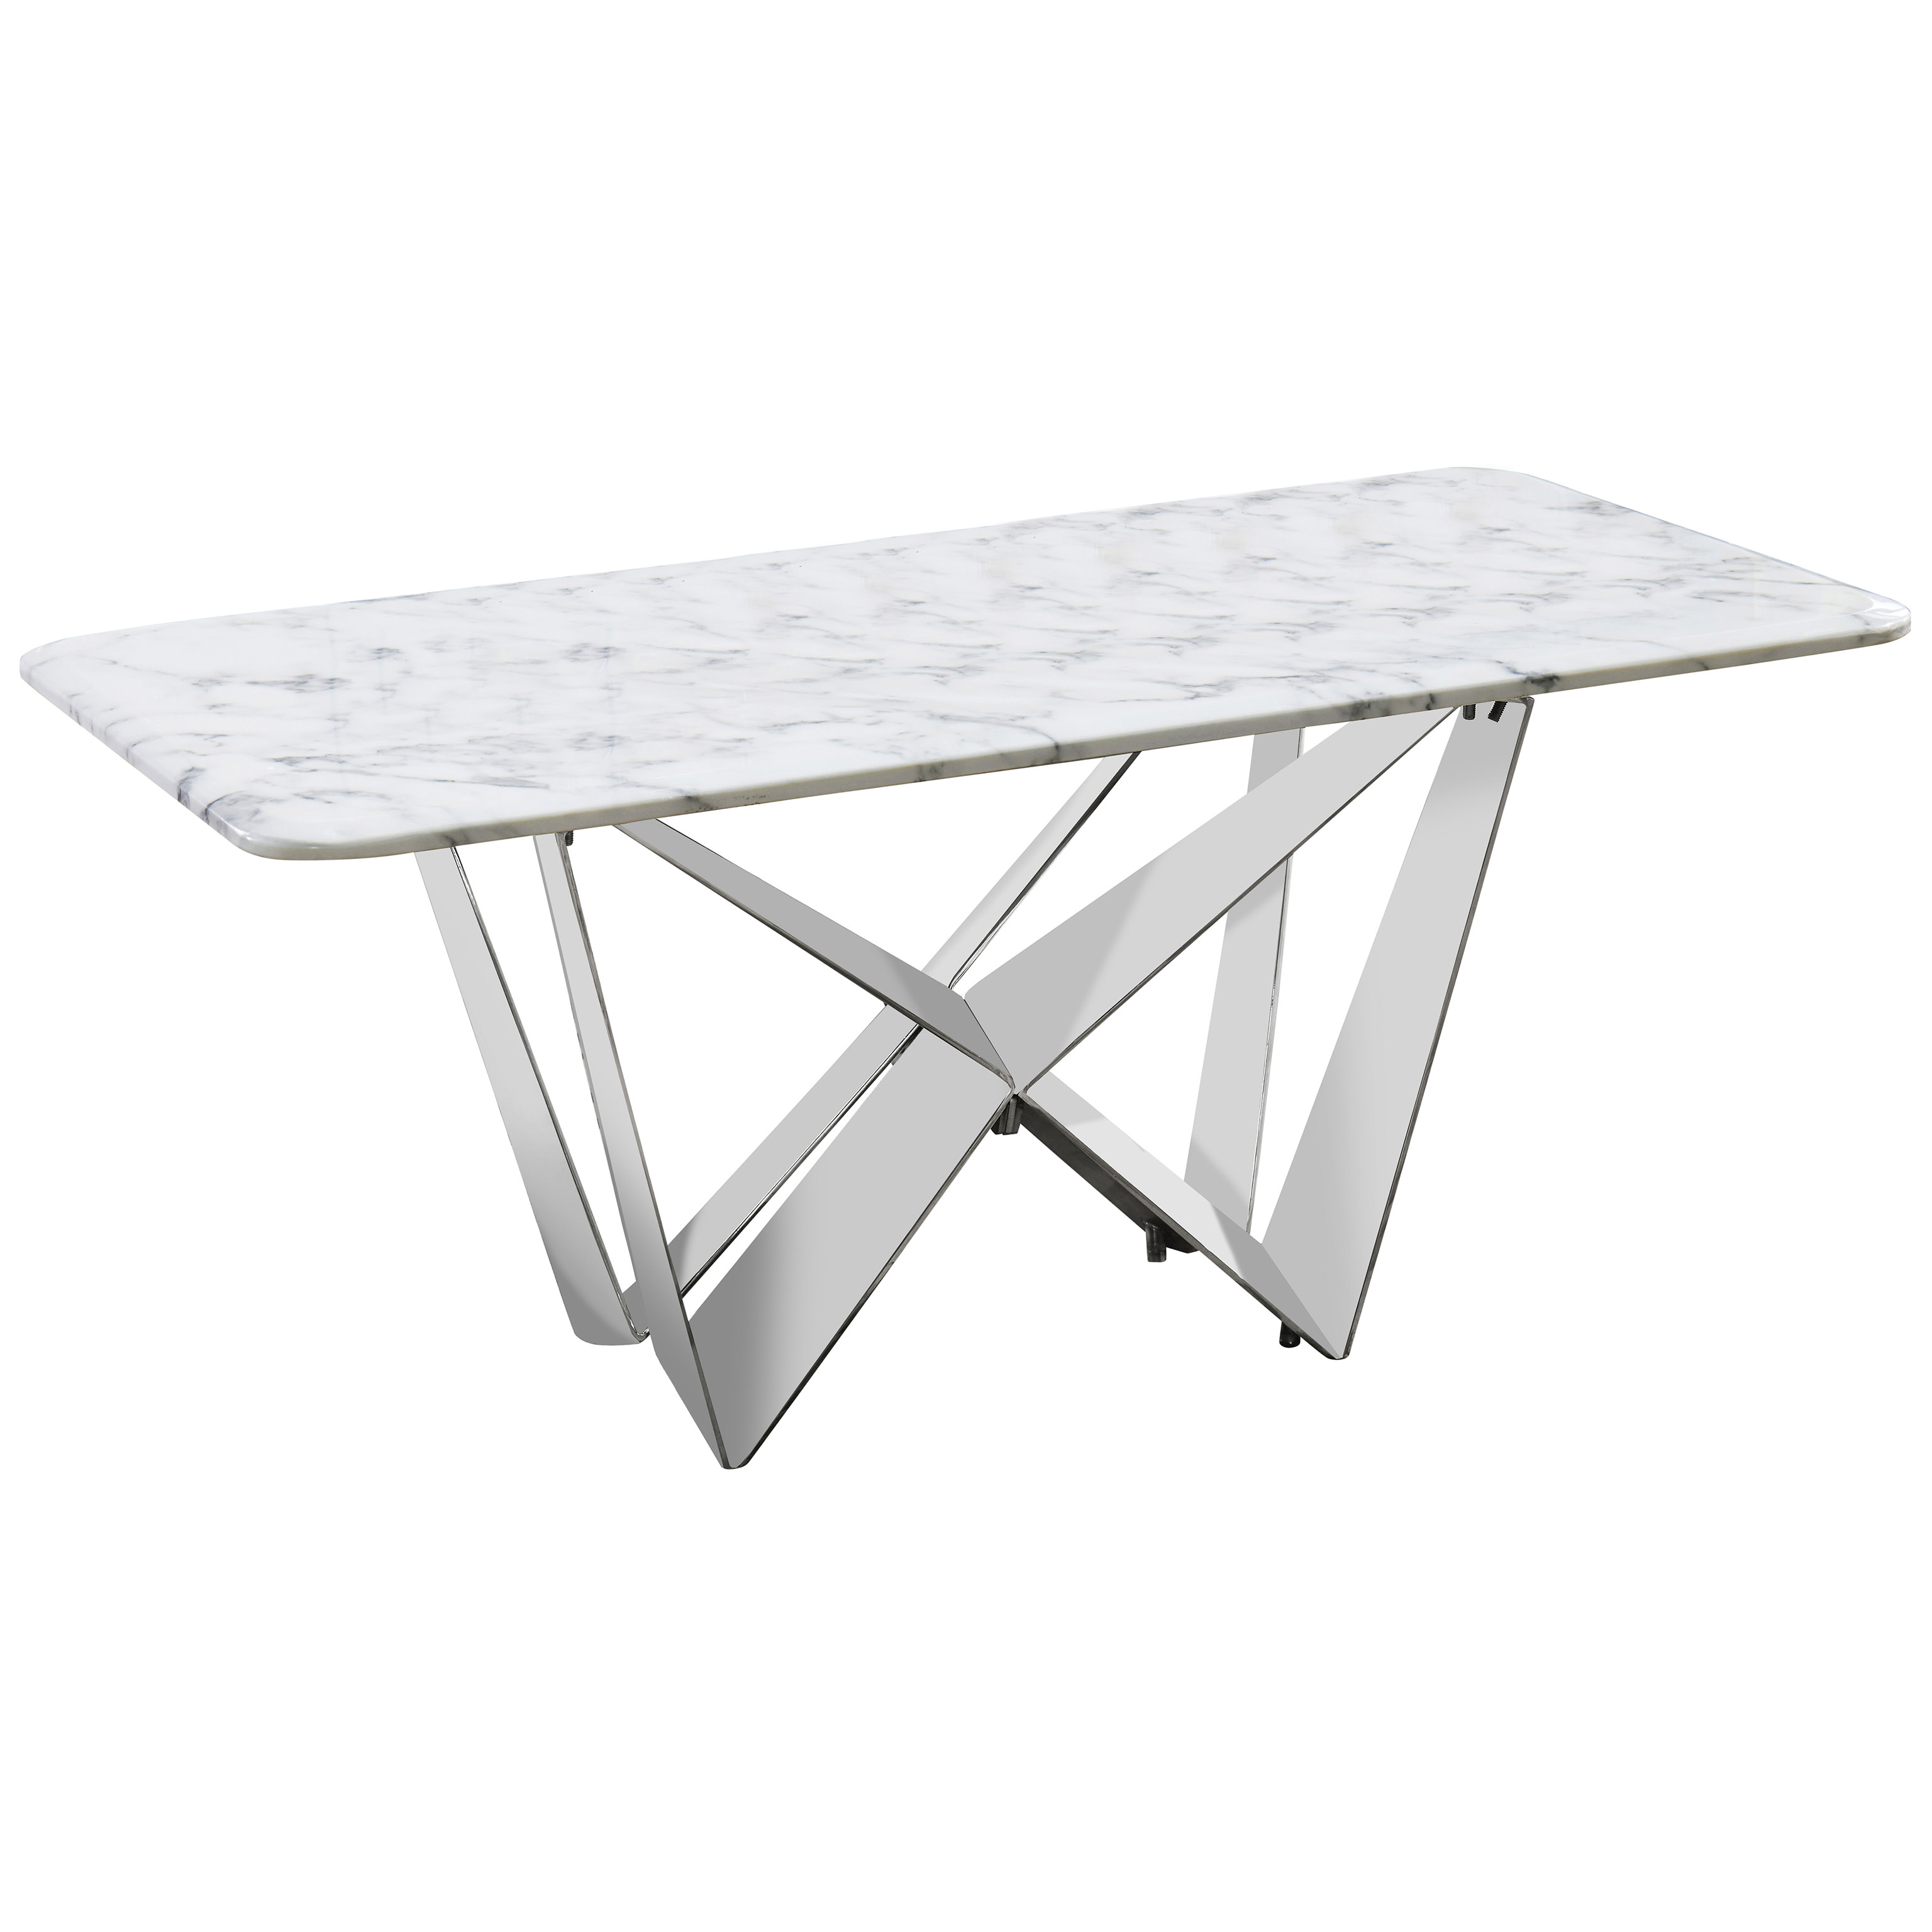 Details About Grey Stone Marble Effect Steel Rectangle Coffee Table